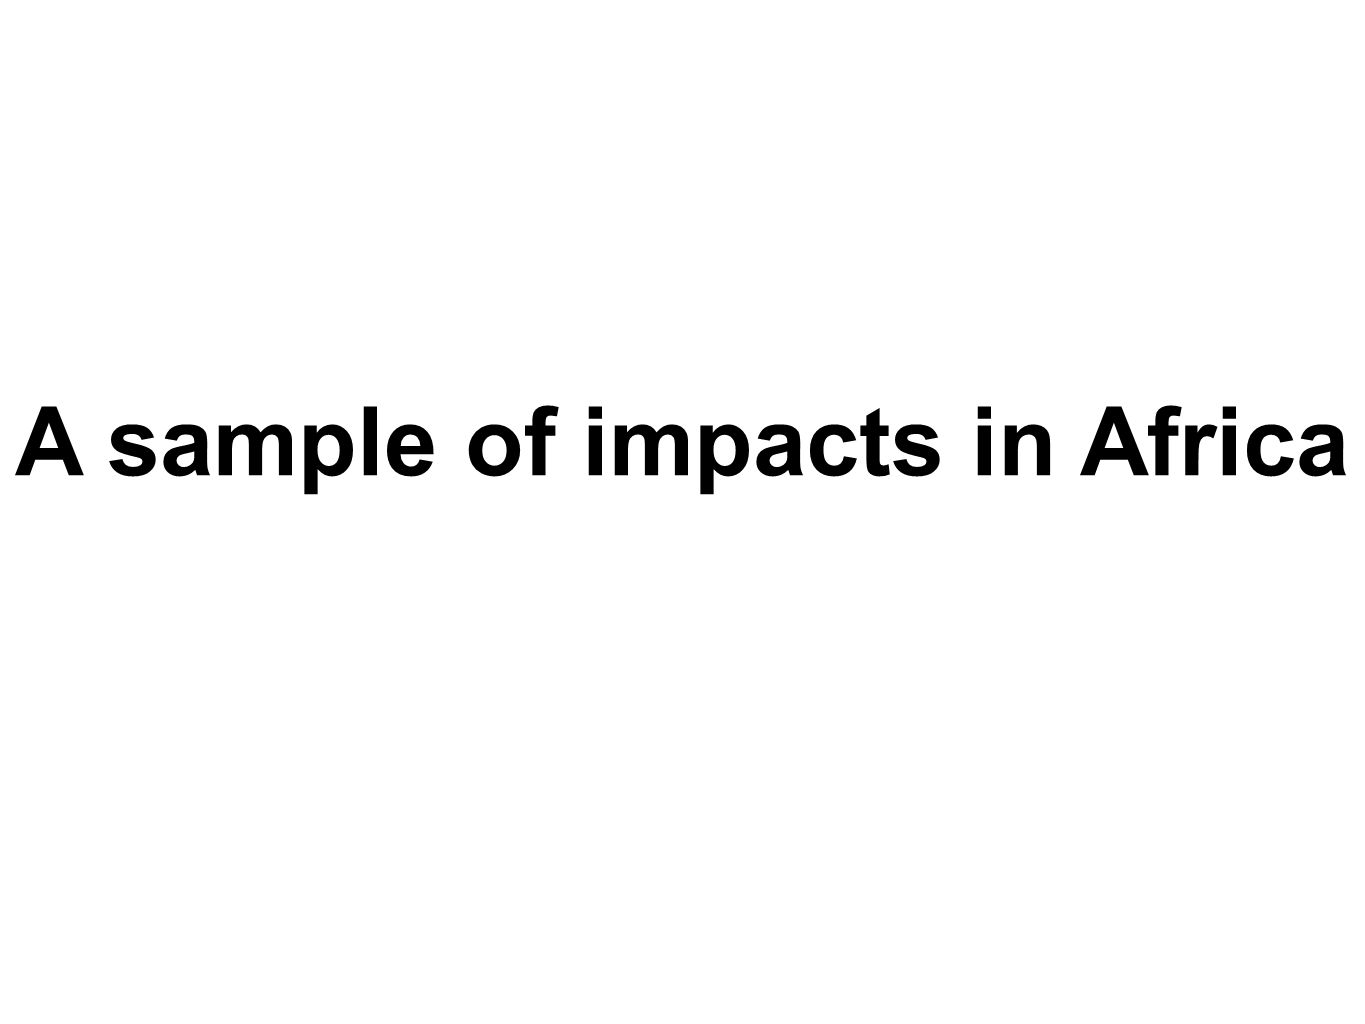 A sample of impacts in Africa